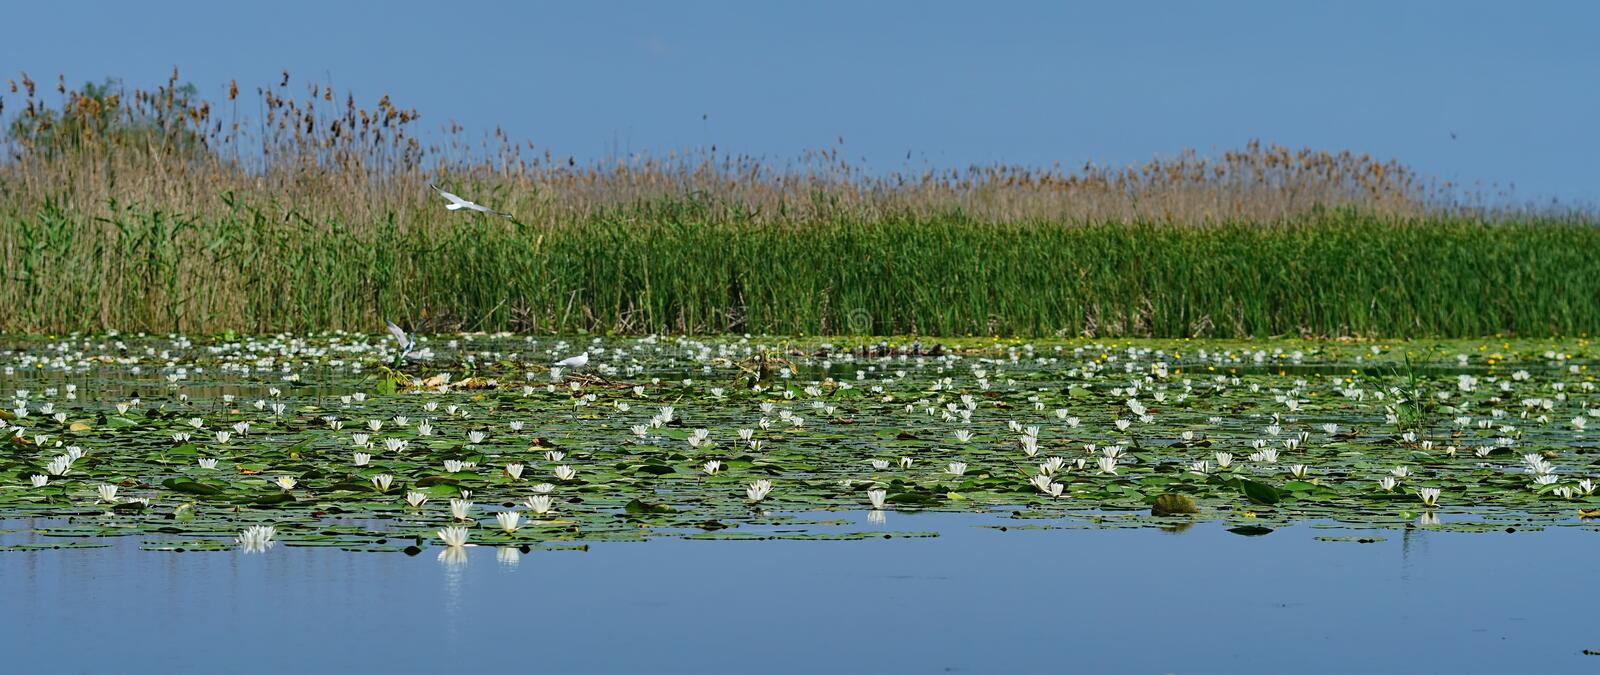 Landscape from Danube Delata with Lotus flowers. Nelumbo lutea - Lotus flowers in Danube Delta, Romania royalty free stock photo